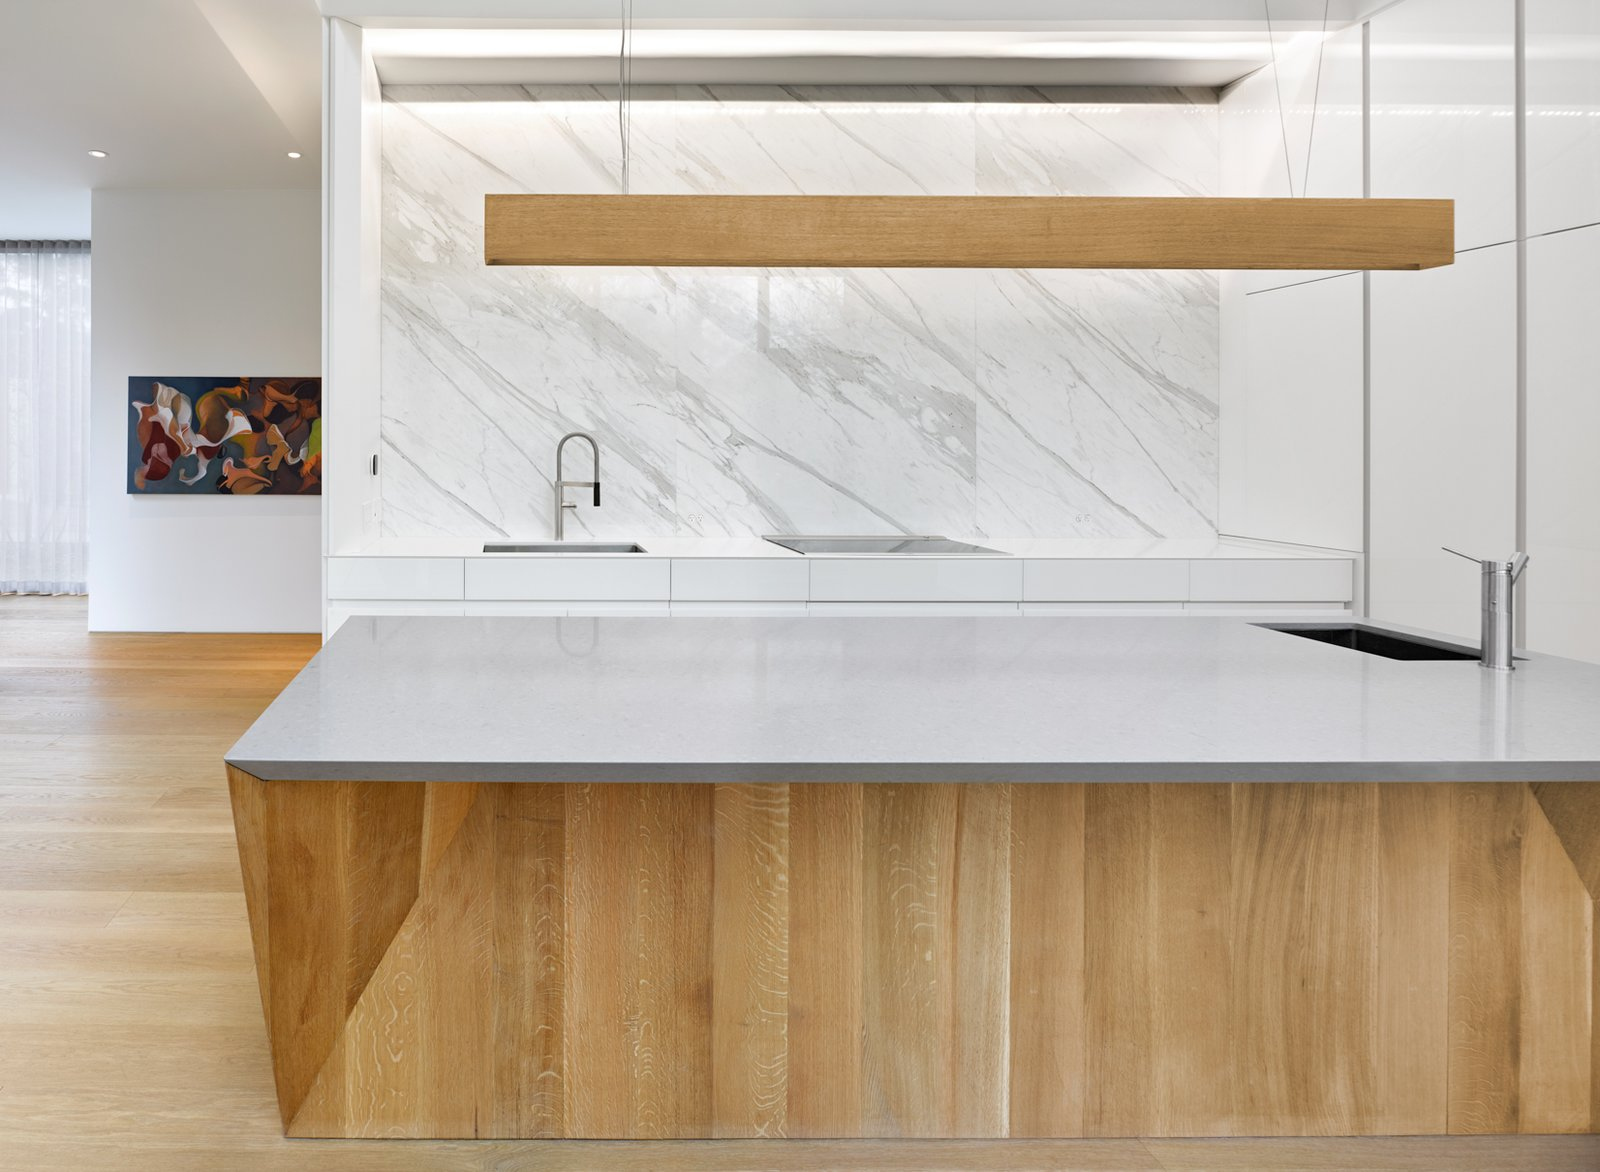 Kitchen, Marble Counter, Marble Backsplashe, Light Hardwood Floor, Undermount Sink, Pendant Lighting, Cooktops, White Cabinet, and Wood Cabinet Calacatta marble slabs are meticulously detailed to reflect the surrounding landscape and contrast the heavy, flat-sawn solid oak island with a faceted base.     Photo 6 of 12 in This Award-Winning Home in Canada Allows Two Generations to Live Under One Roof